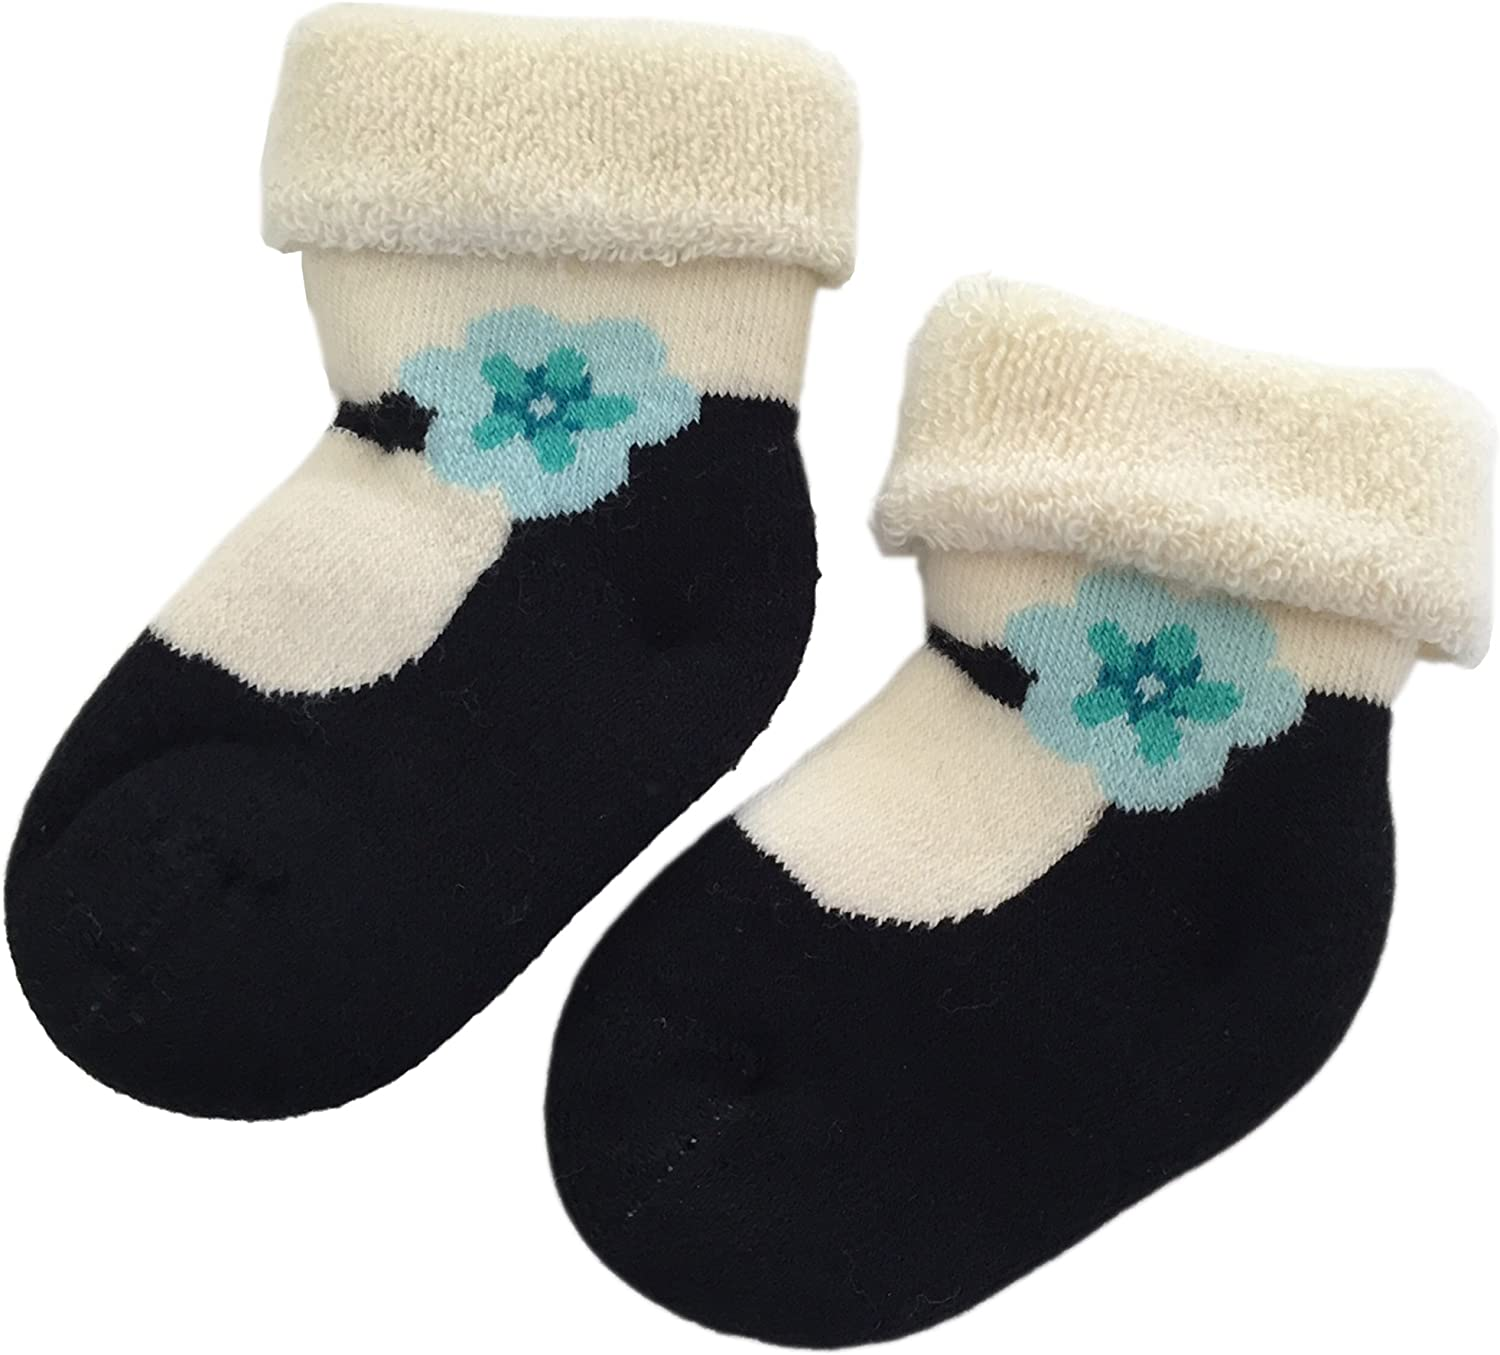 0-6 Months Stay On Baby Socks Mary Jane with Blue flower